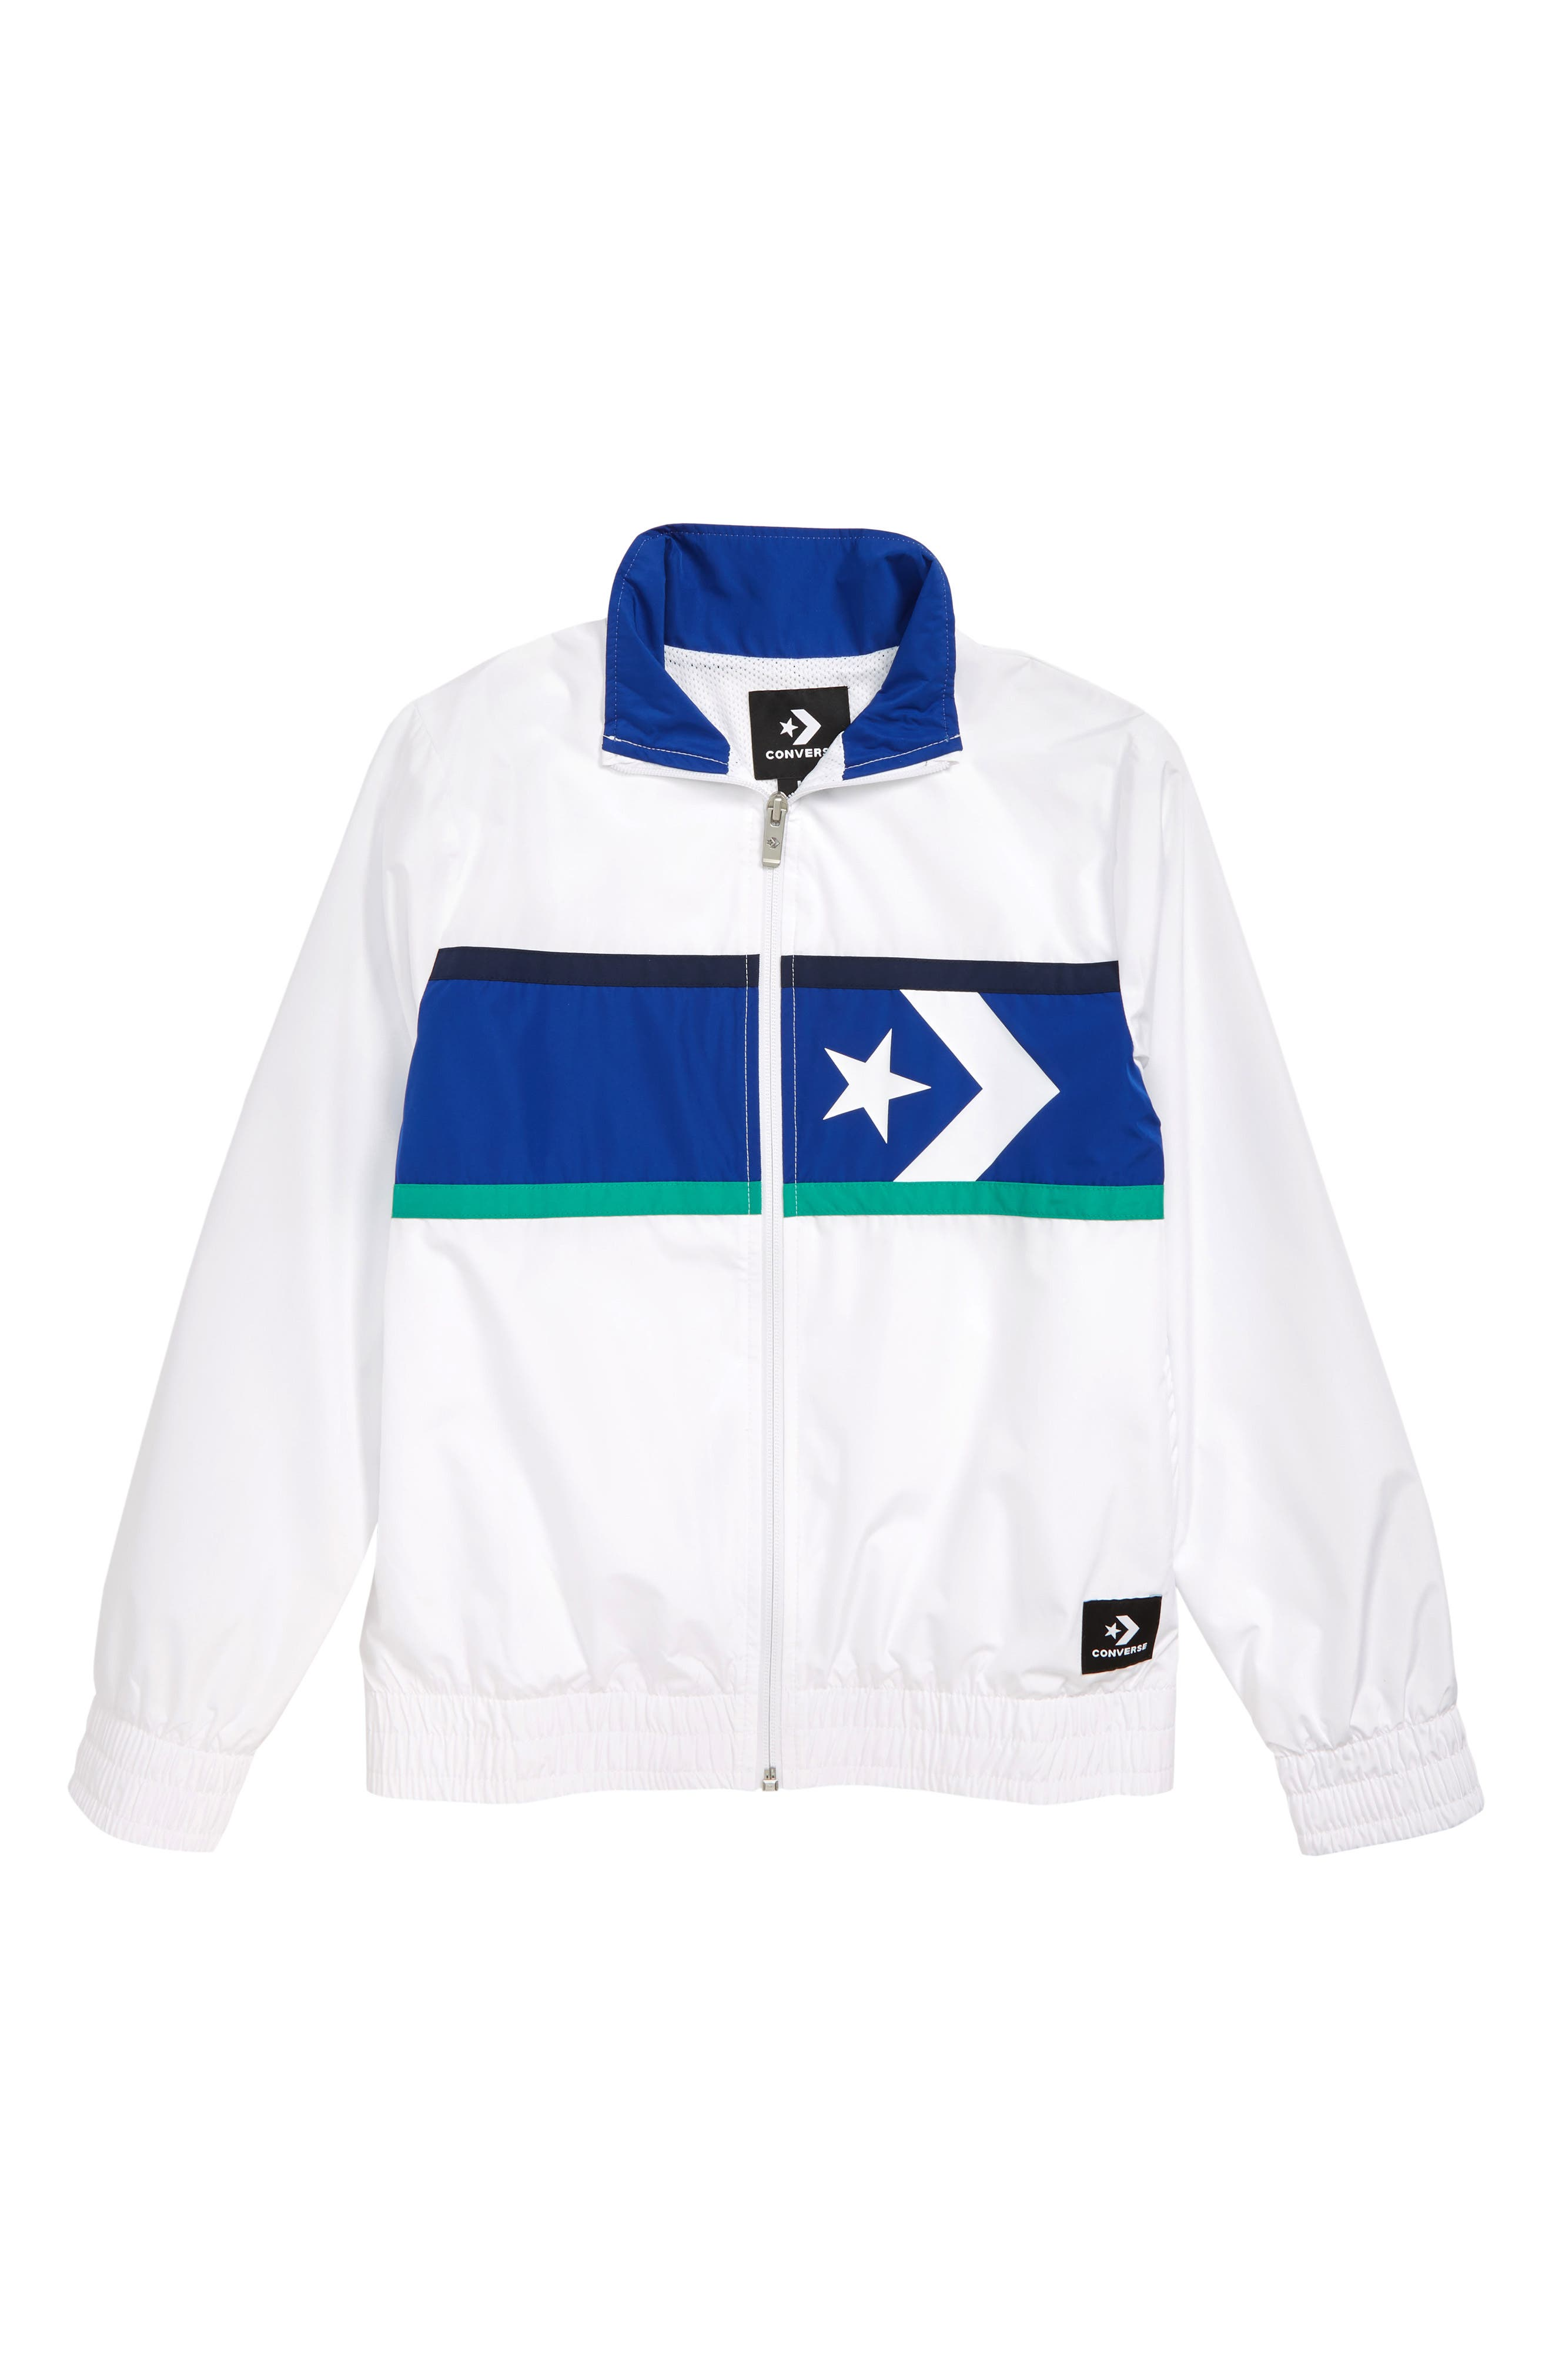 CONVERSE Star Chevron Water Resistant Wind Jacket, Main, color, WHITE